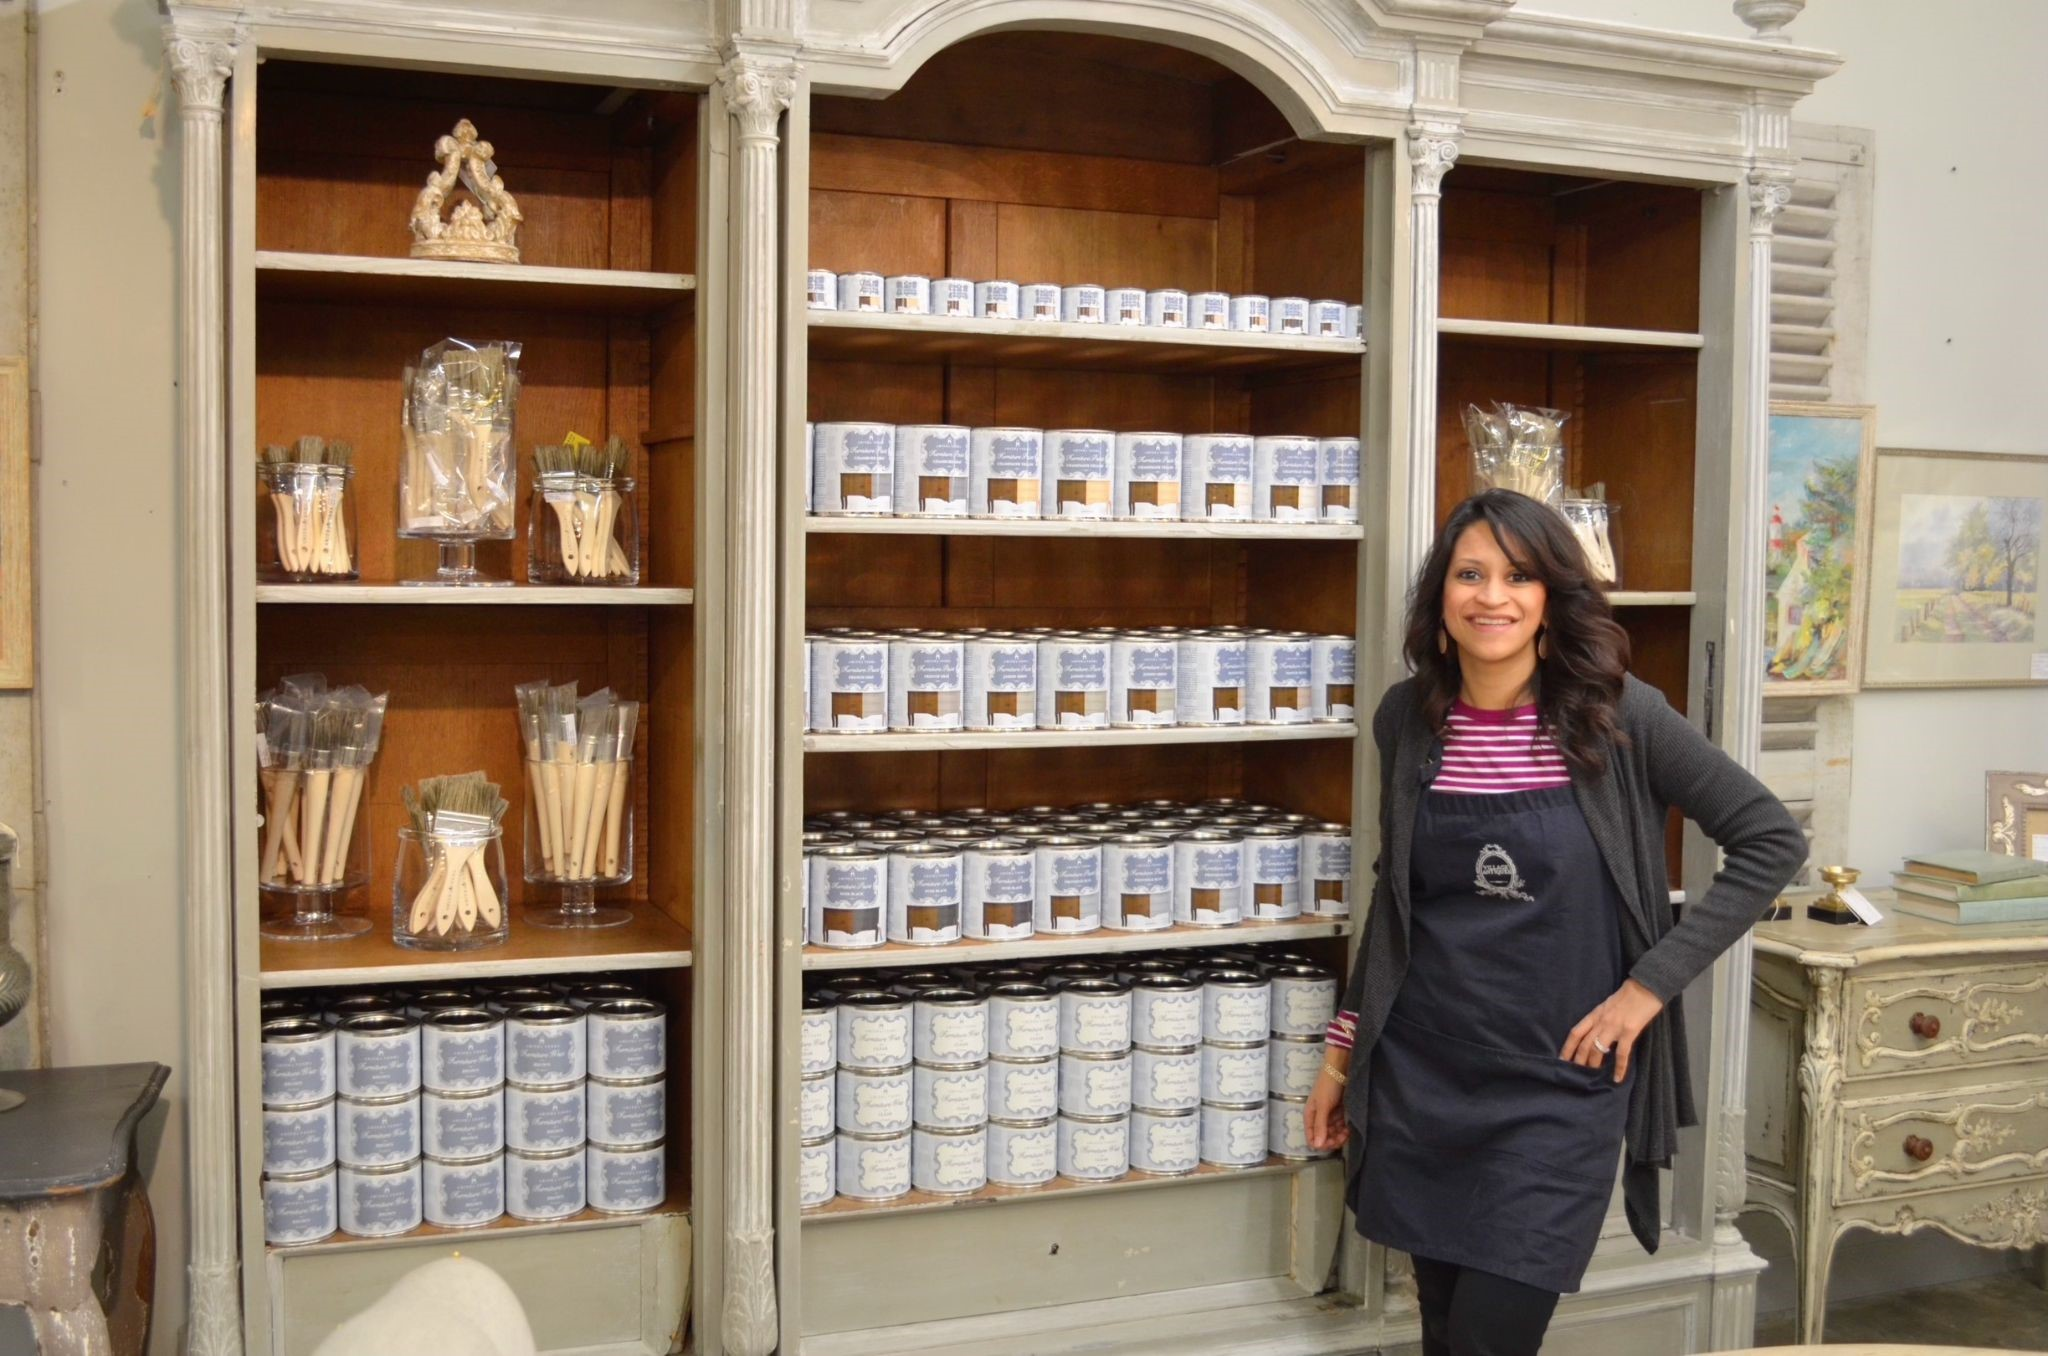 Amitha standing next to her fresh display of chalk finish paint that she designed herself, in her antique store in Houston, Village Antiques.